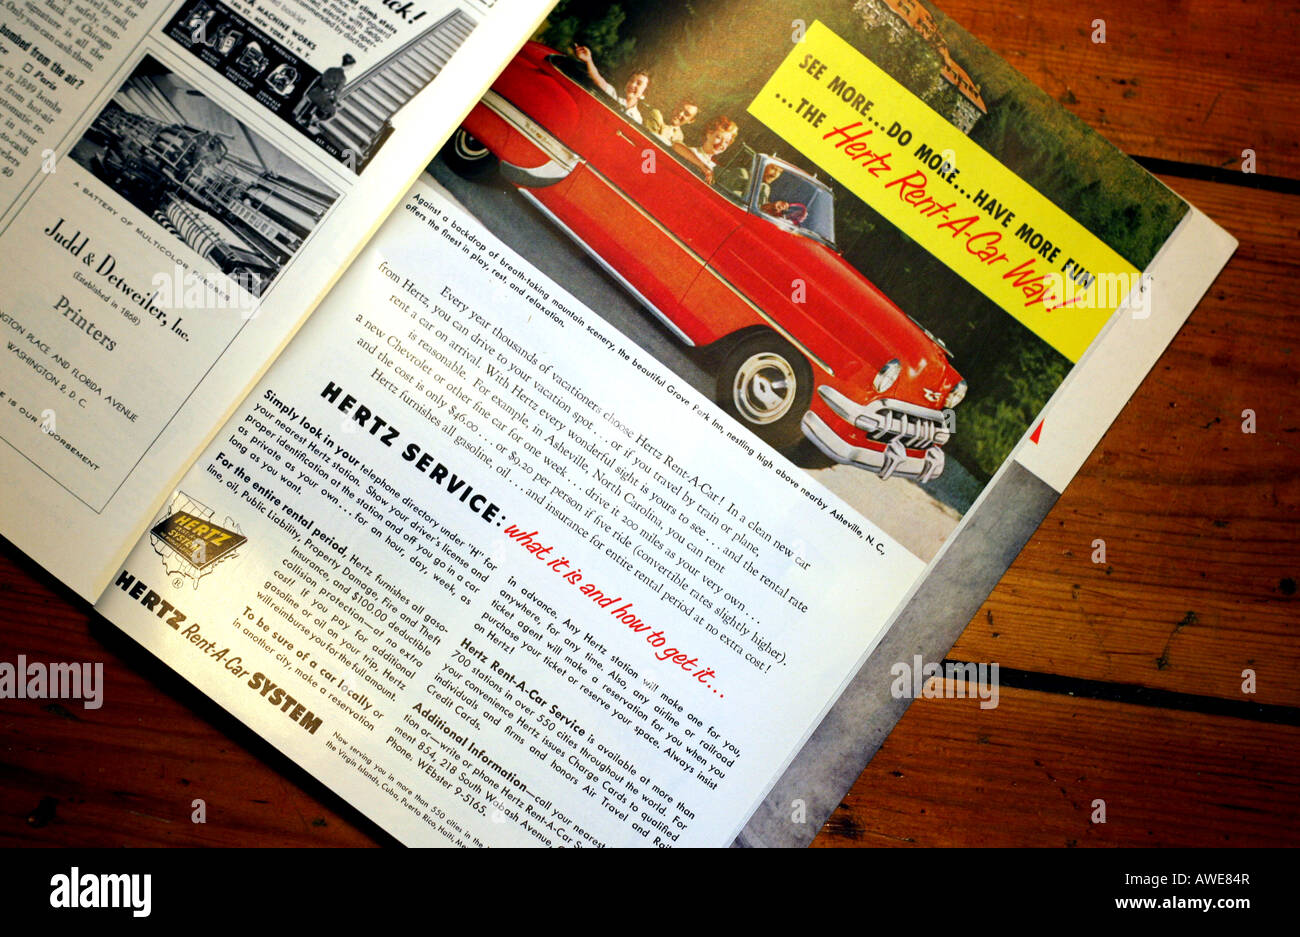 Hertz Car Rental Advert In 1950s National Geographic Magazine Stock